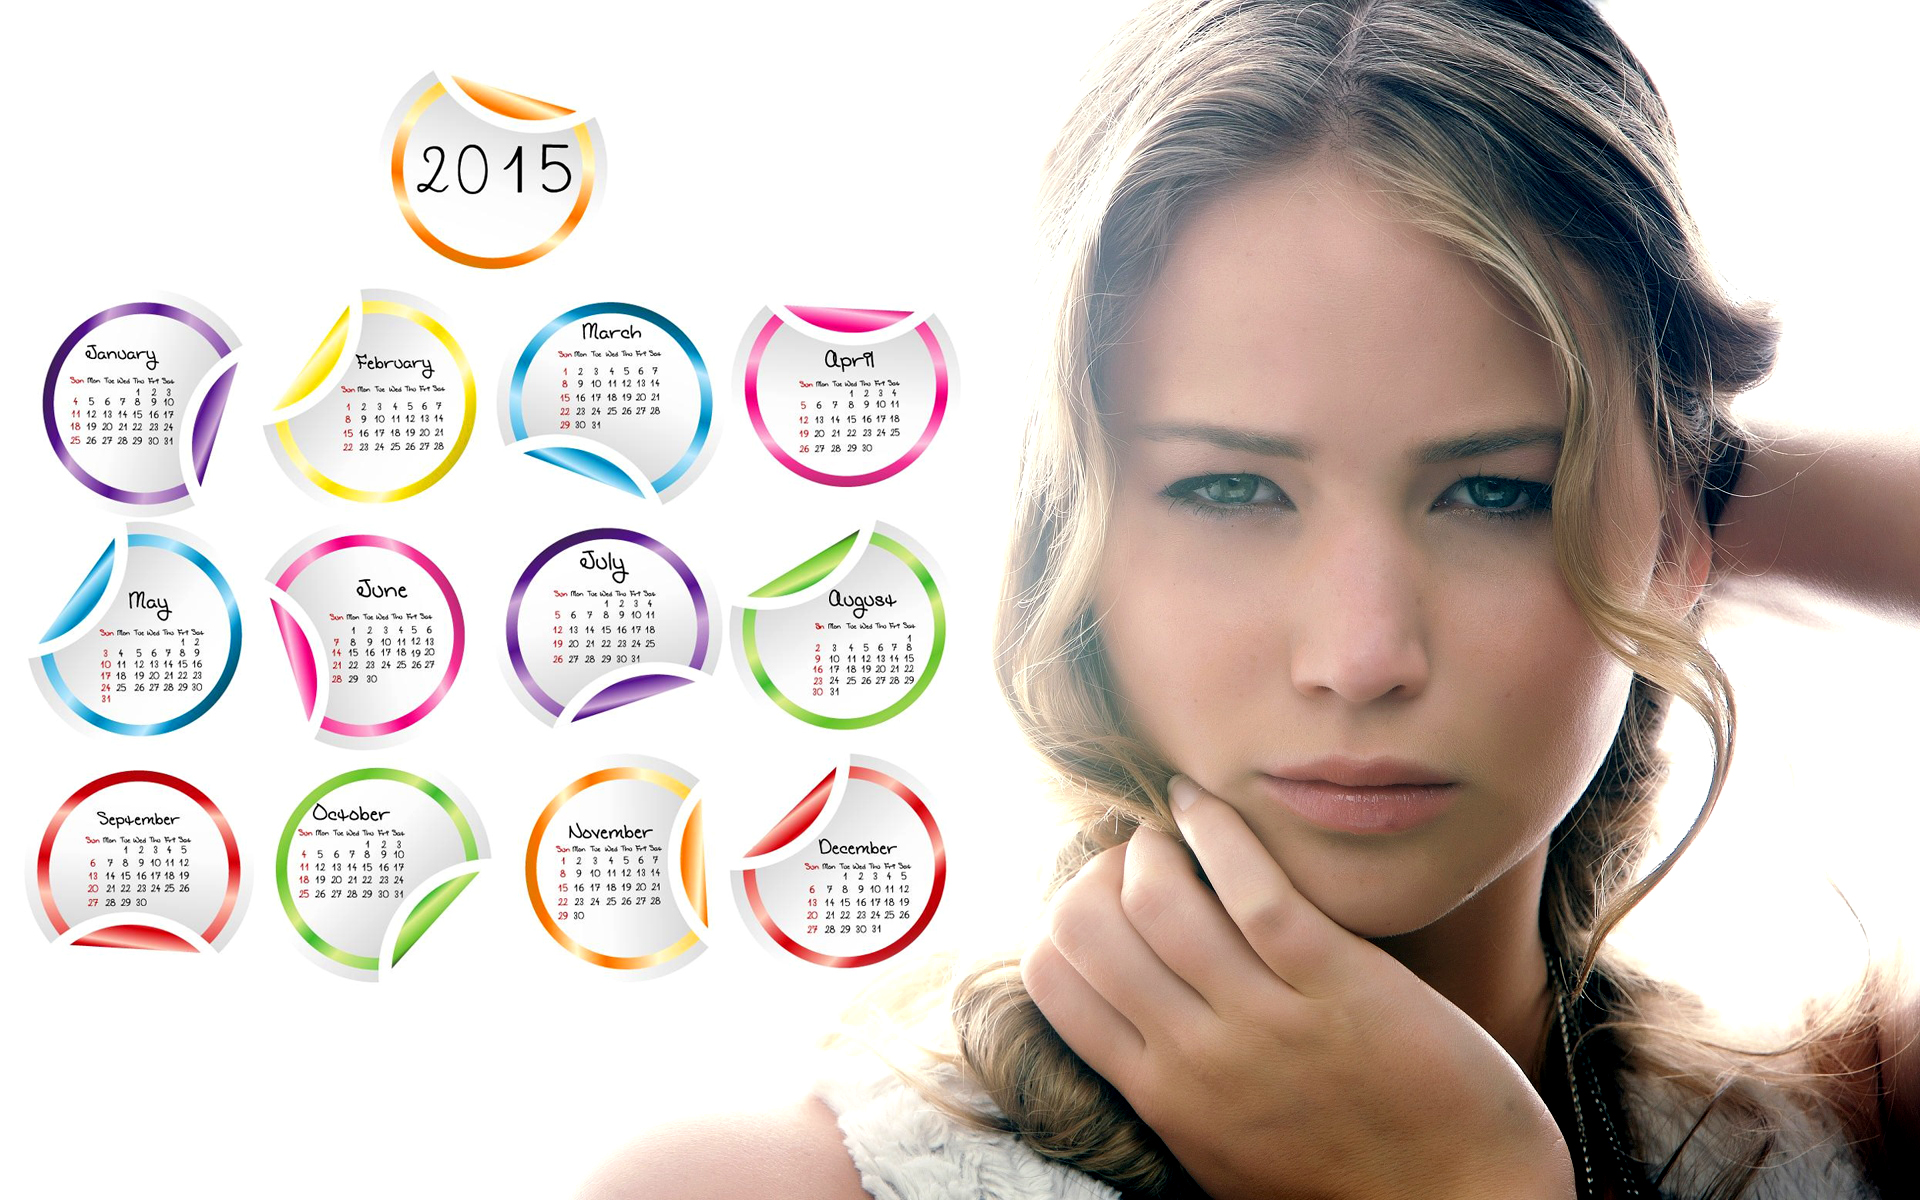 jennifer lawrence katniss beautiful 2015 calendar